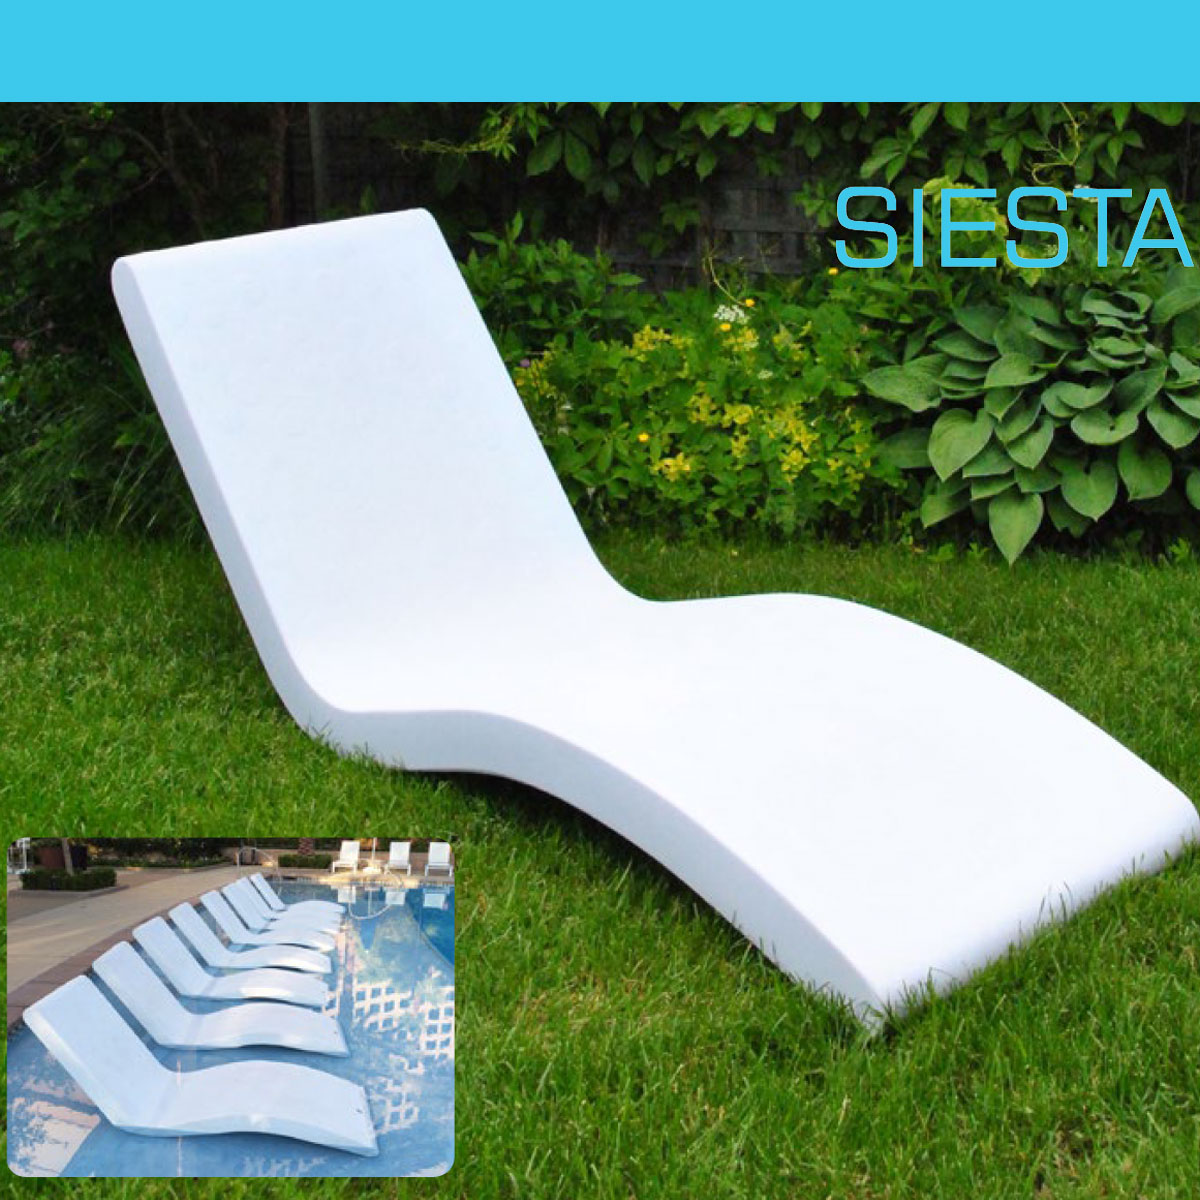 Siesta Tanning Ledge Chaise make a beautiful addition to your in pool sunshelf